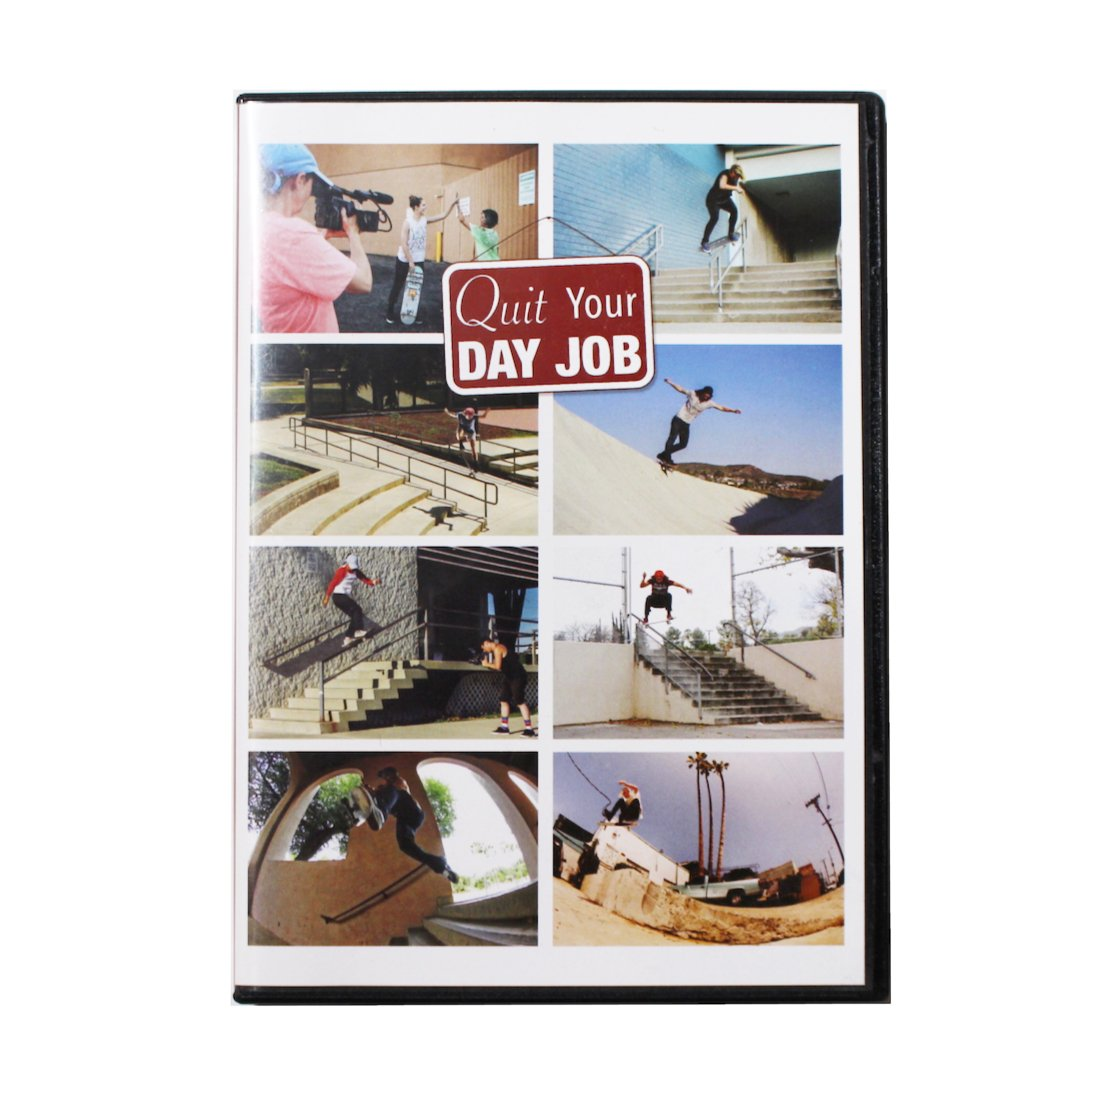 【QUIT YOUR DAY JOB】- DVD